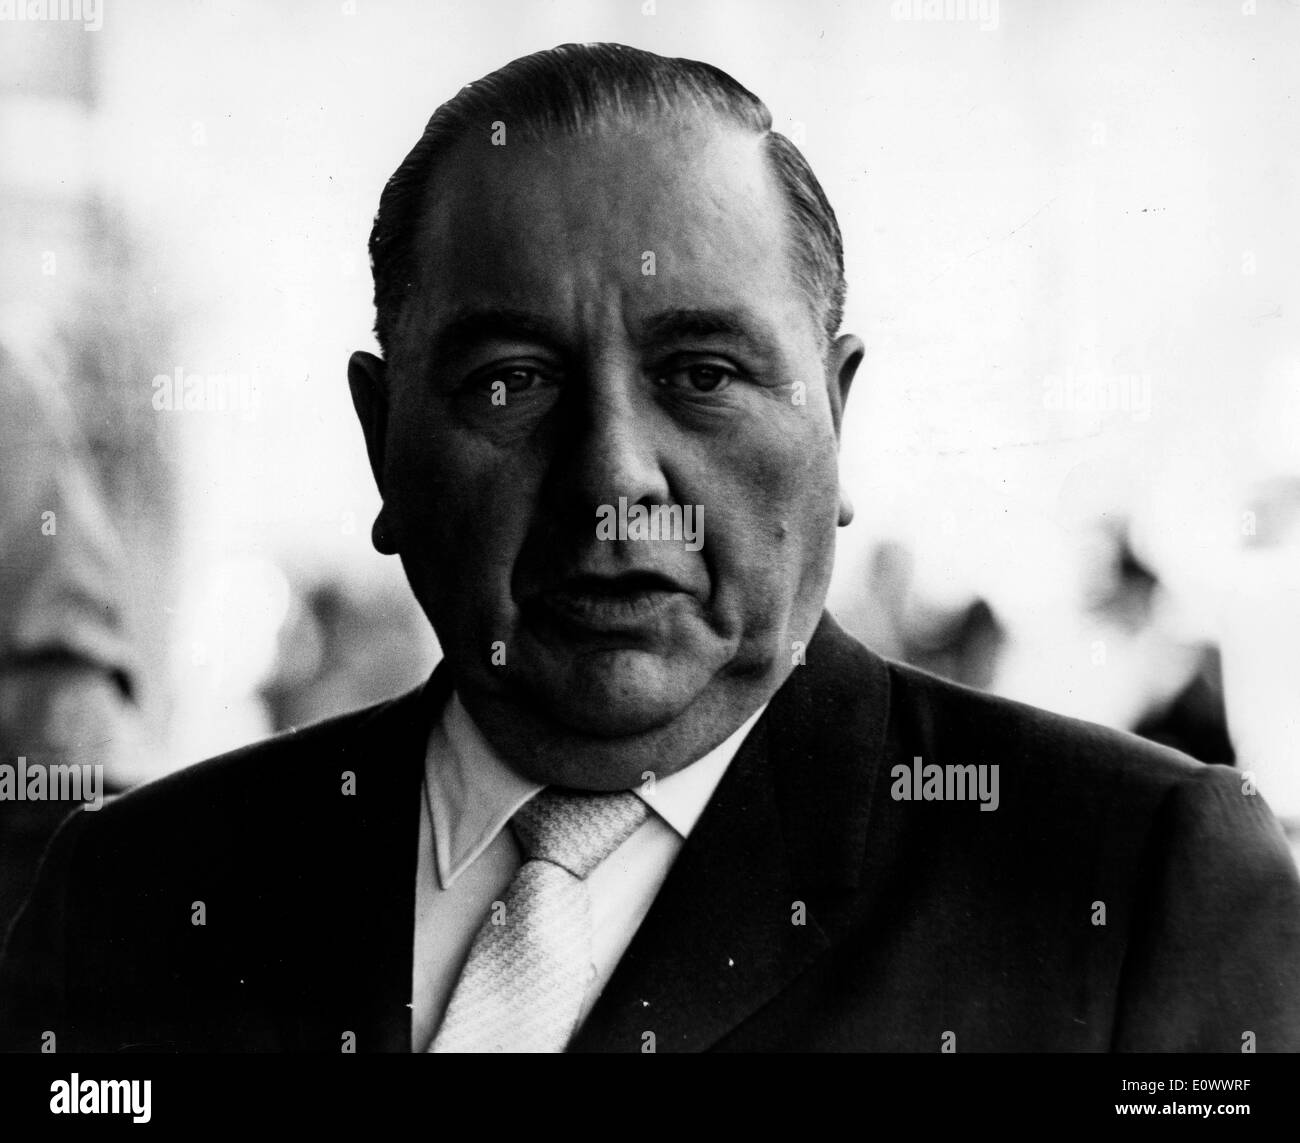 Mayor of Chicago Richard J. Daley visits London - Stock Image